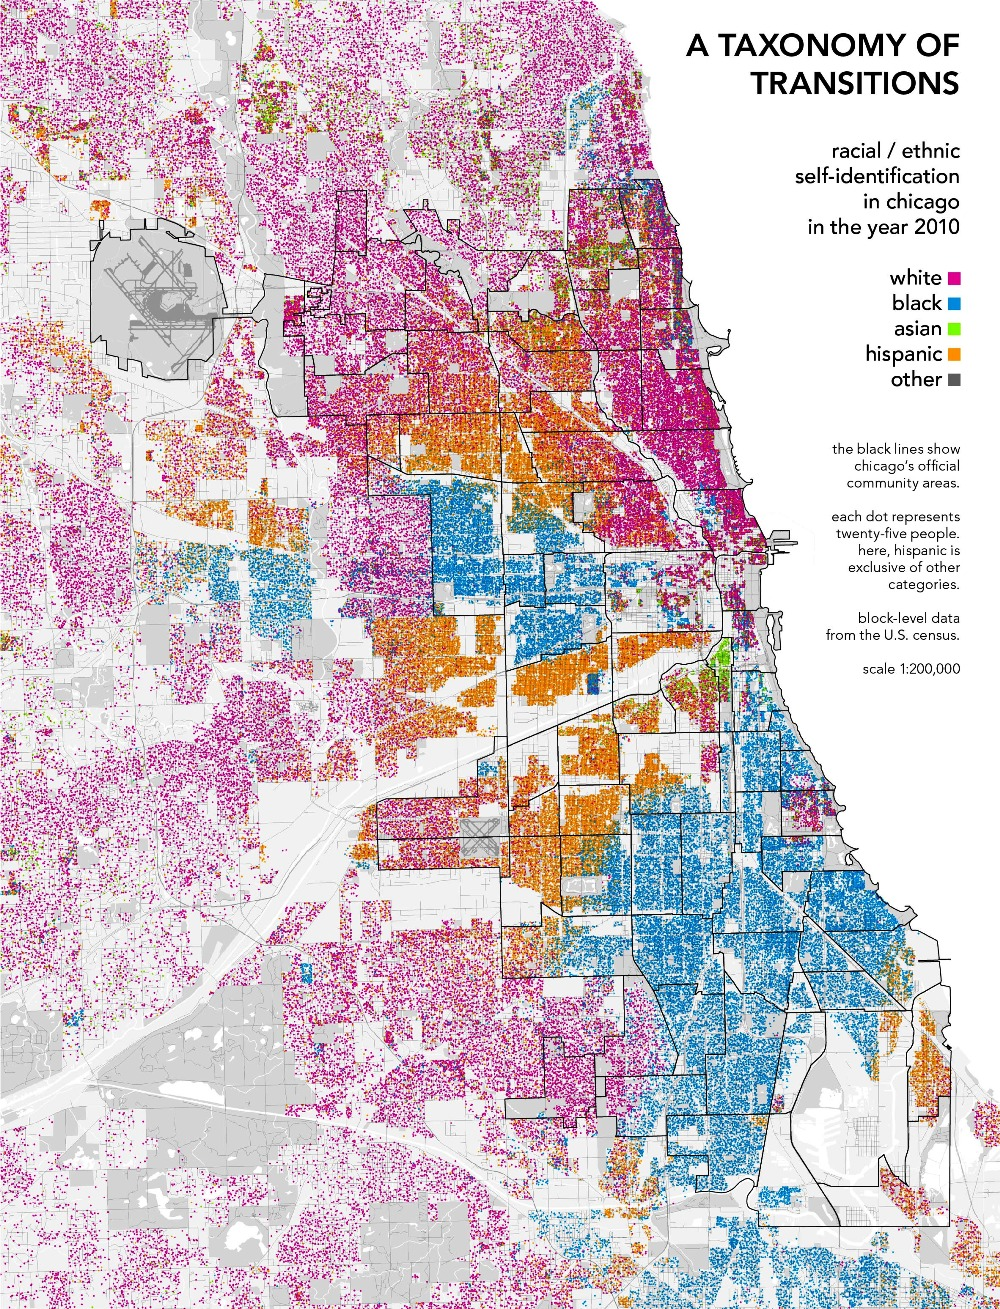 racial segregation chicago The Radical Segregation Of Chicago